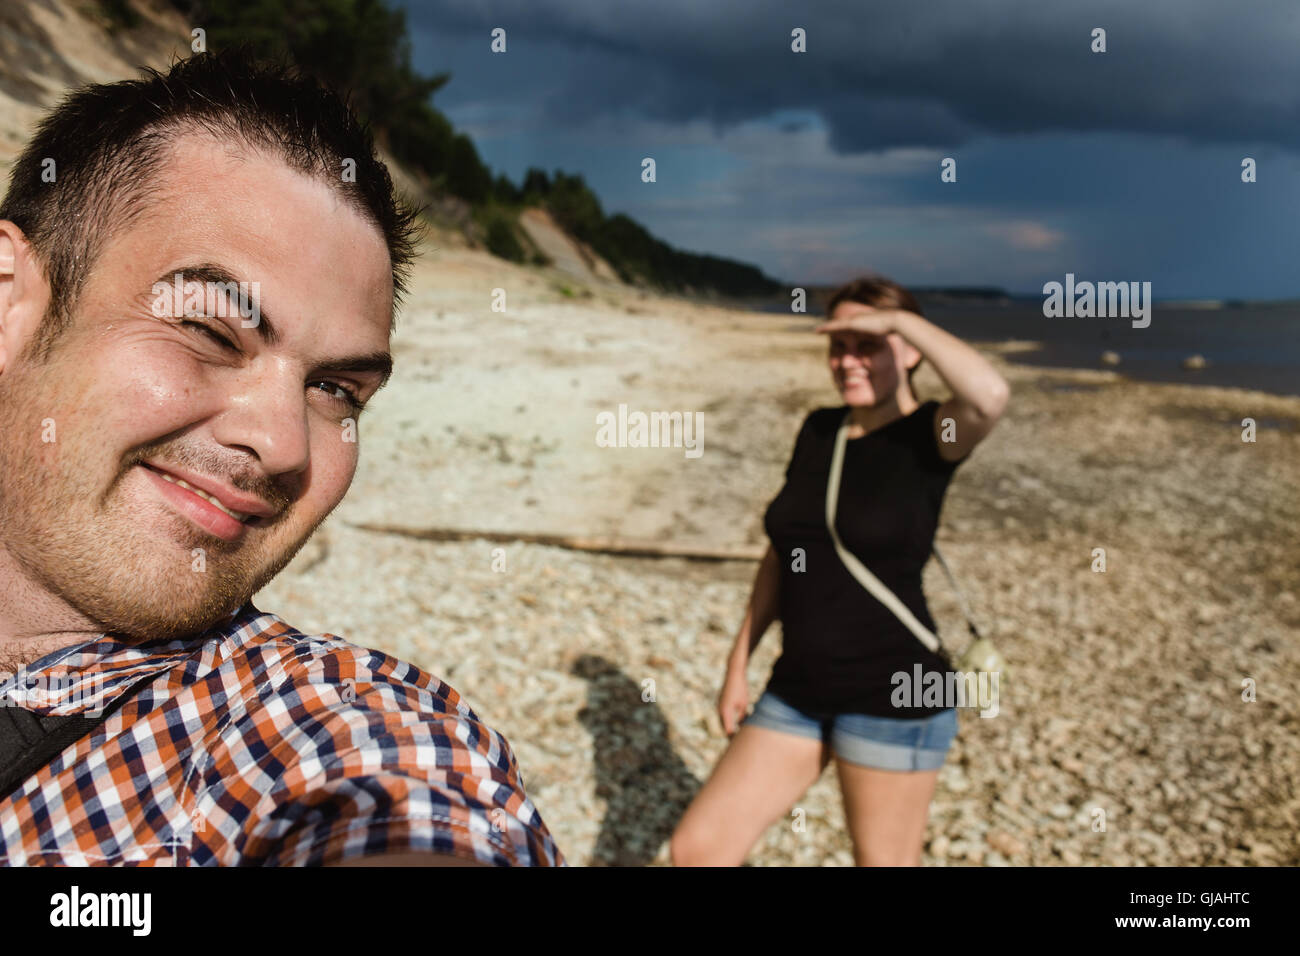 Two hikers taking selfie on forest edge in hot sunny weather - Stock Image